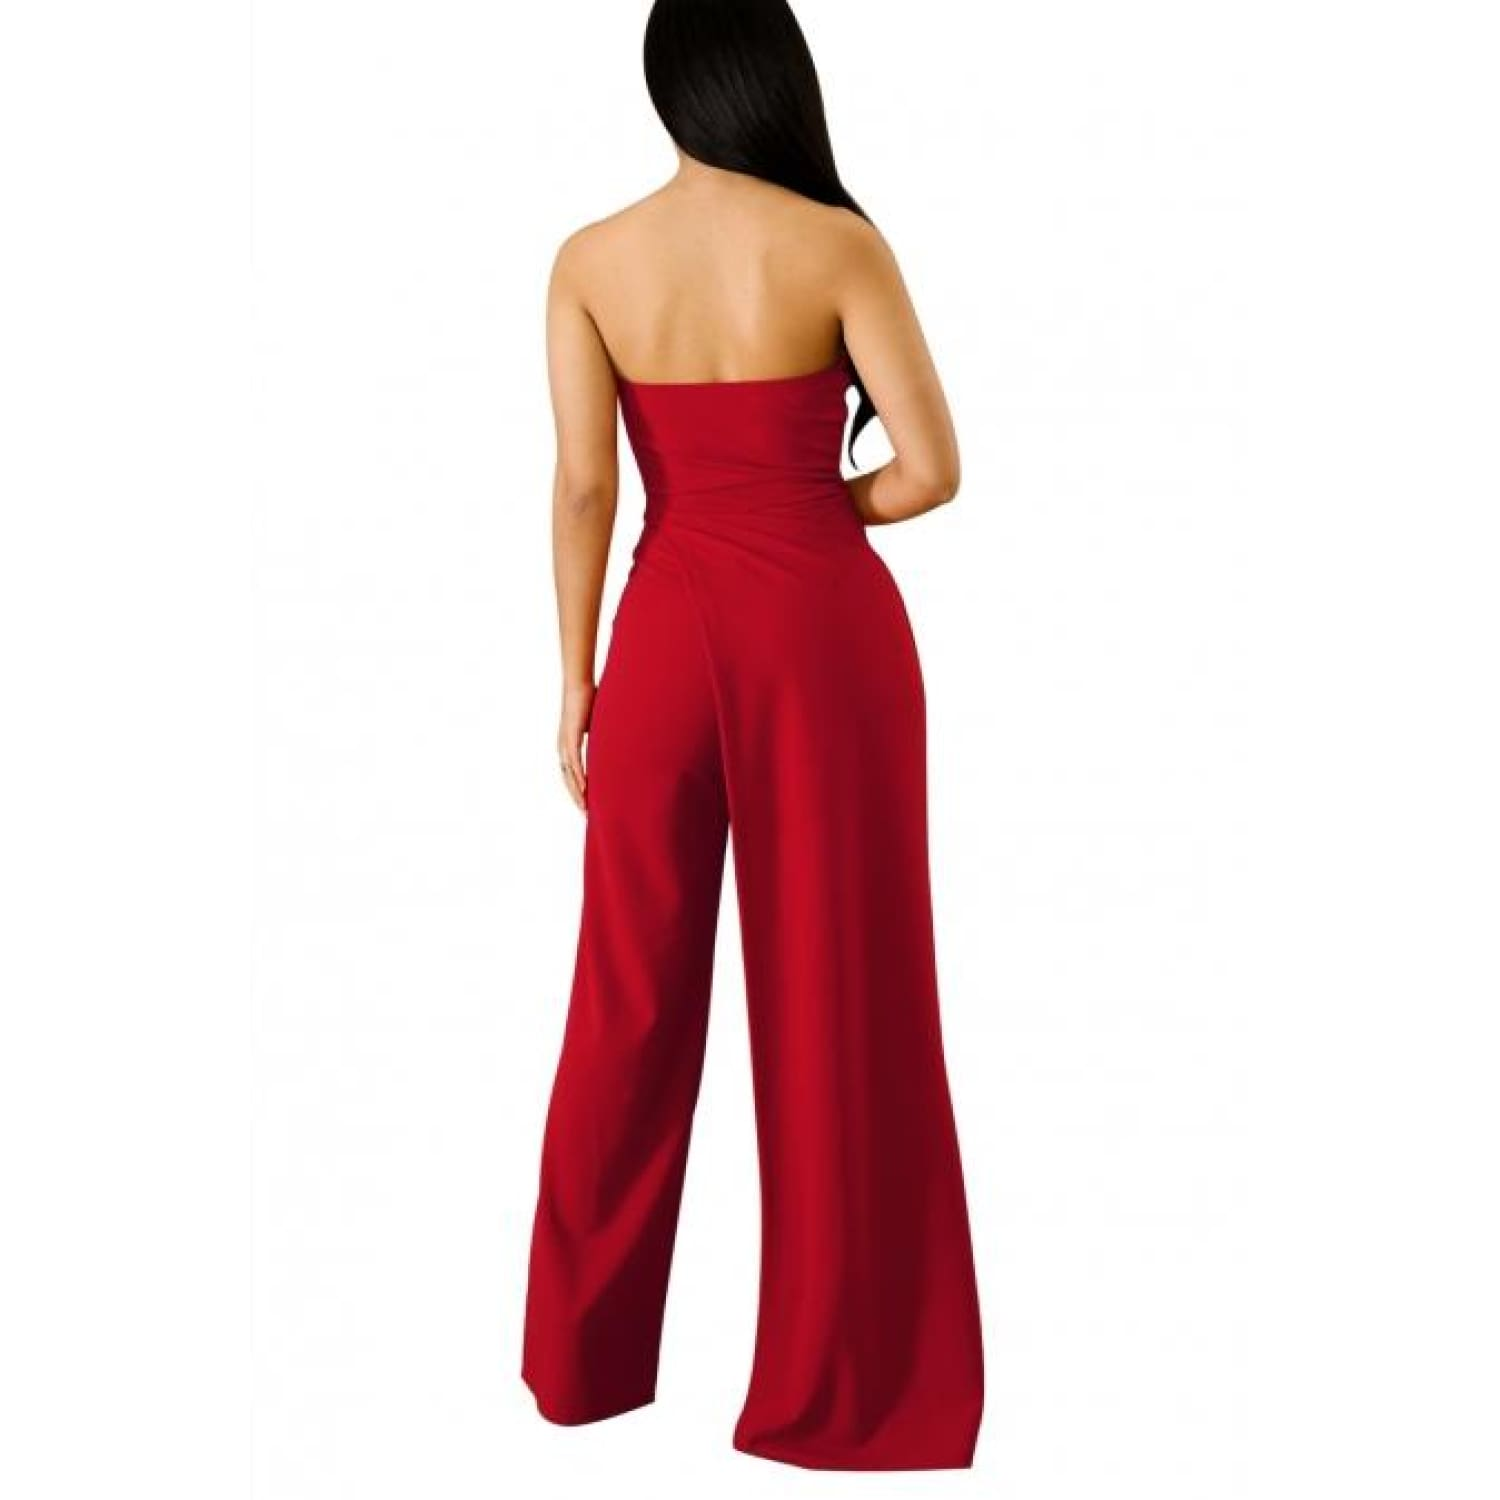 Red Open Leg Jumpsuit - Best YOU by HTS